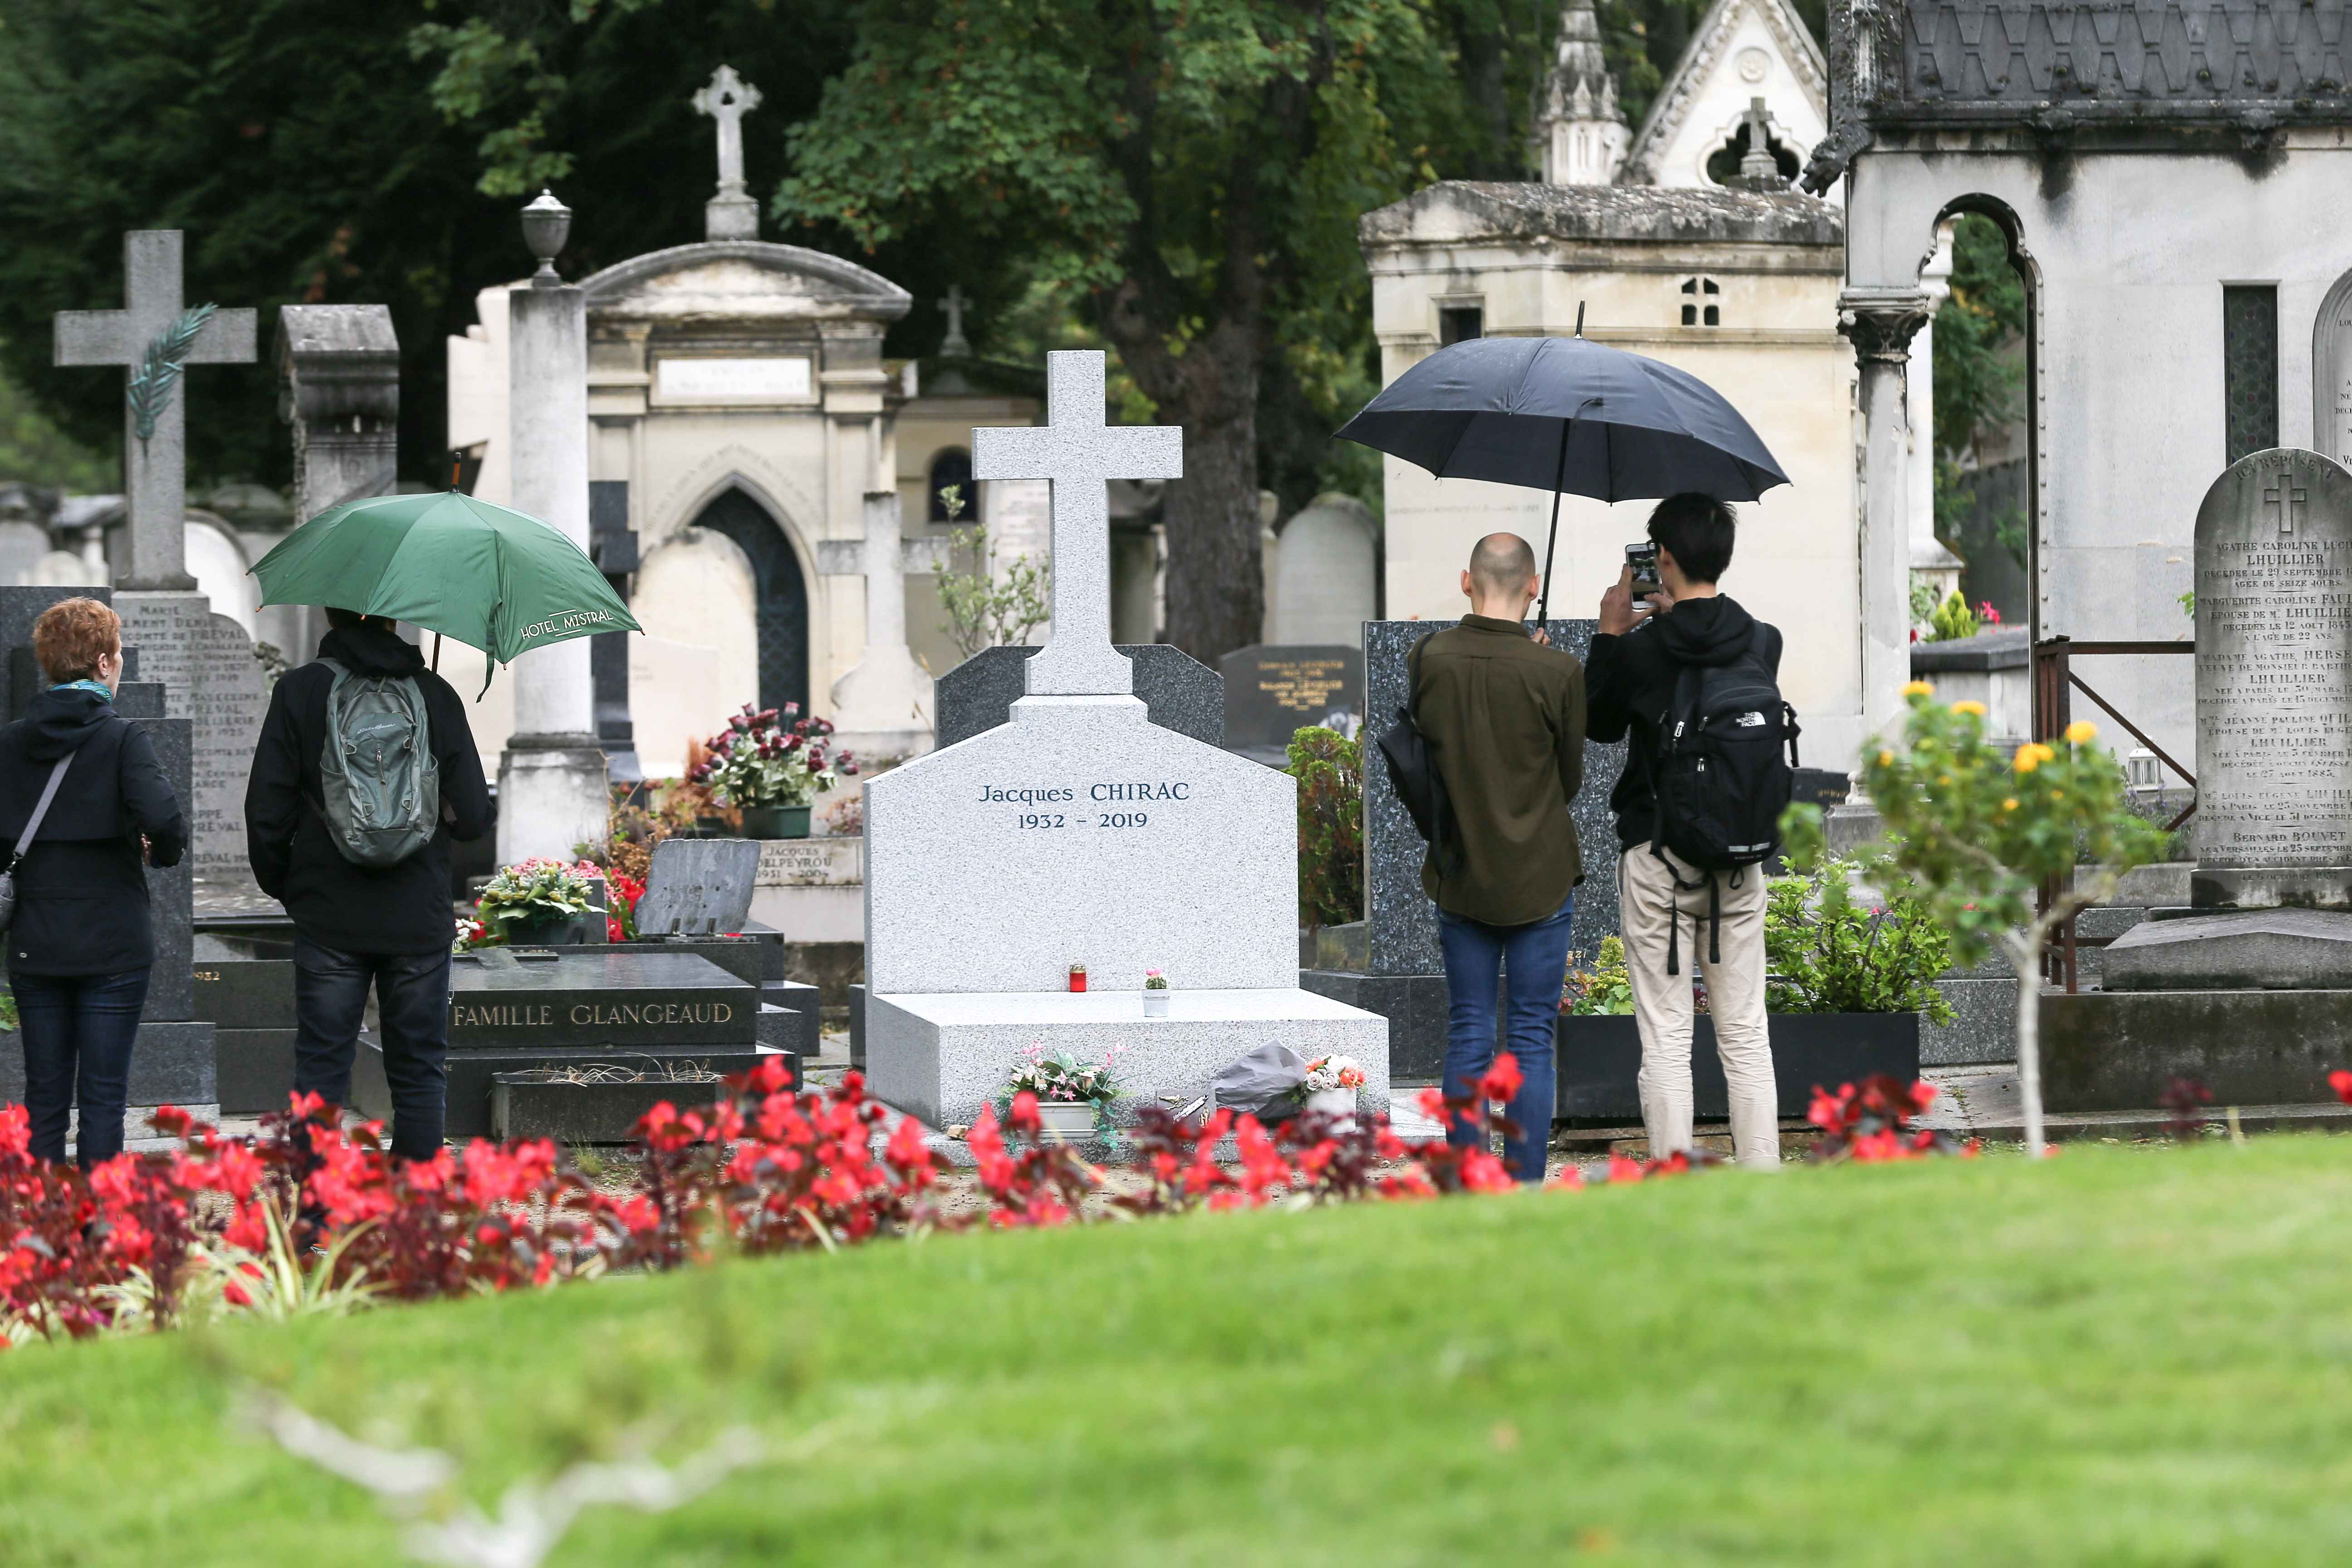 Bystanders gather beside the gravestone at The Montparnasse Cemetery in Paris on September 29, 2019, where former French President Jacques Chirac will be buried next to his daughter Laurence after his funeral which is scheduled for September 30. Jacques Ch